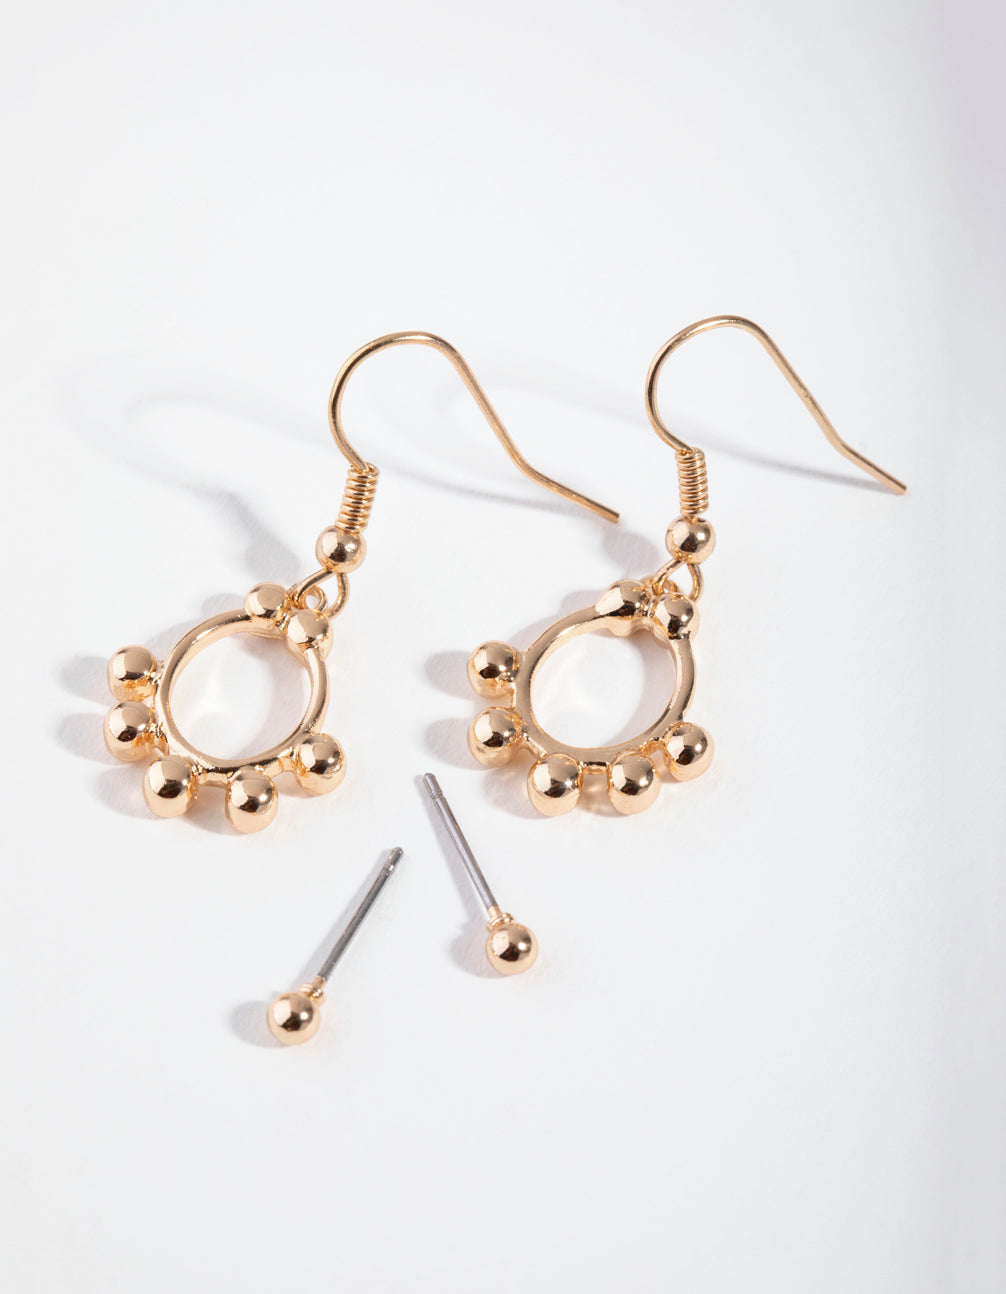 Gold Open Circle and Ball Two-Pack Earrings